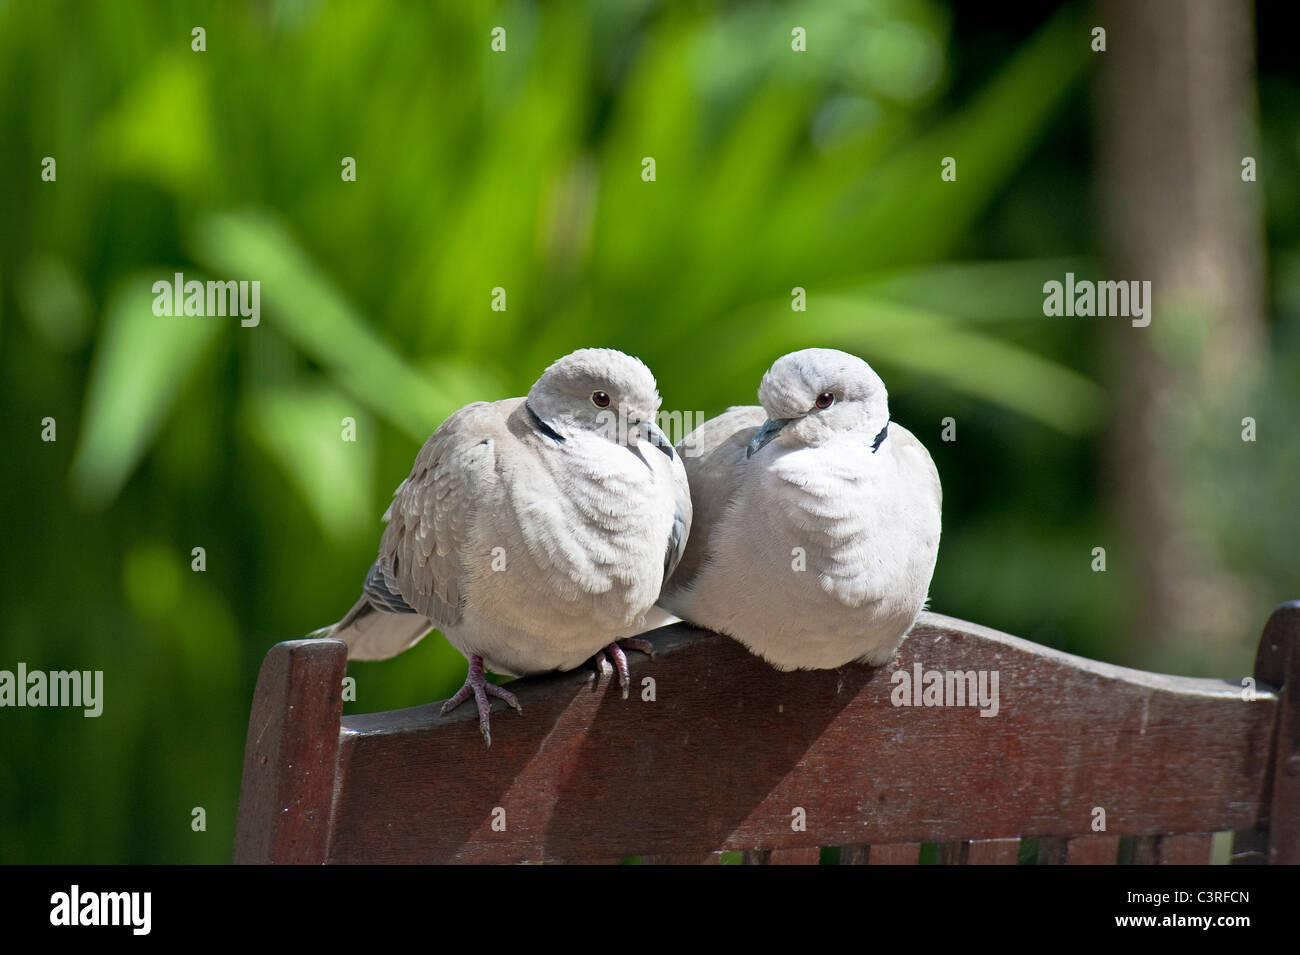 Two birds - A pair of Eurasian collared doves resting on the back of garden chairs - Stock Image